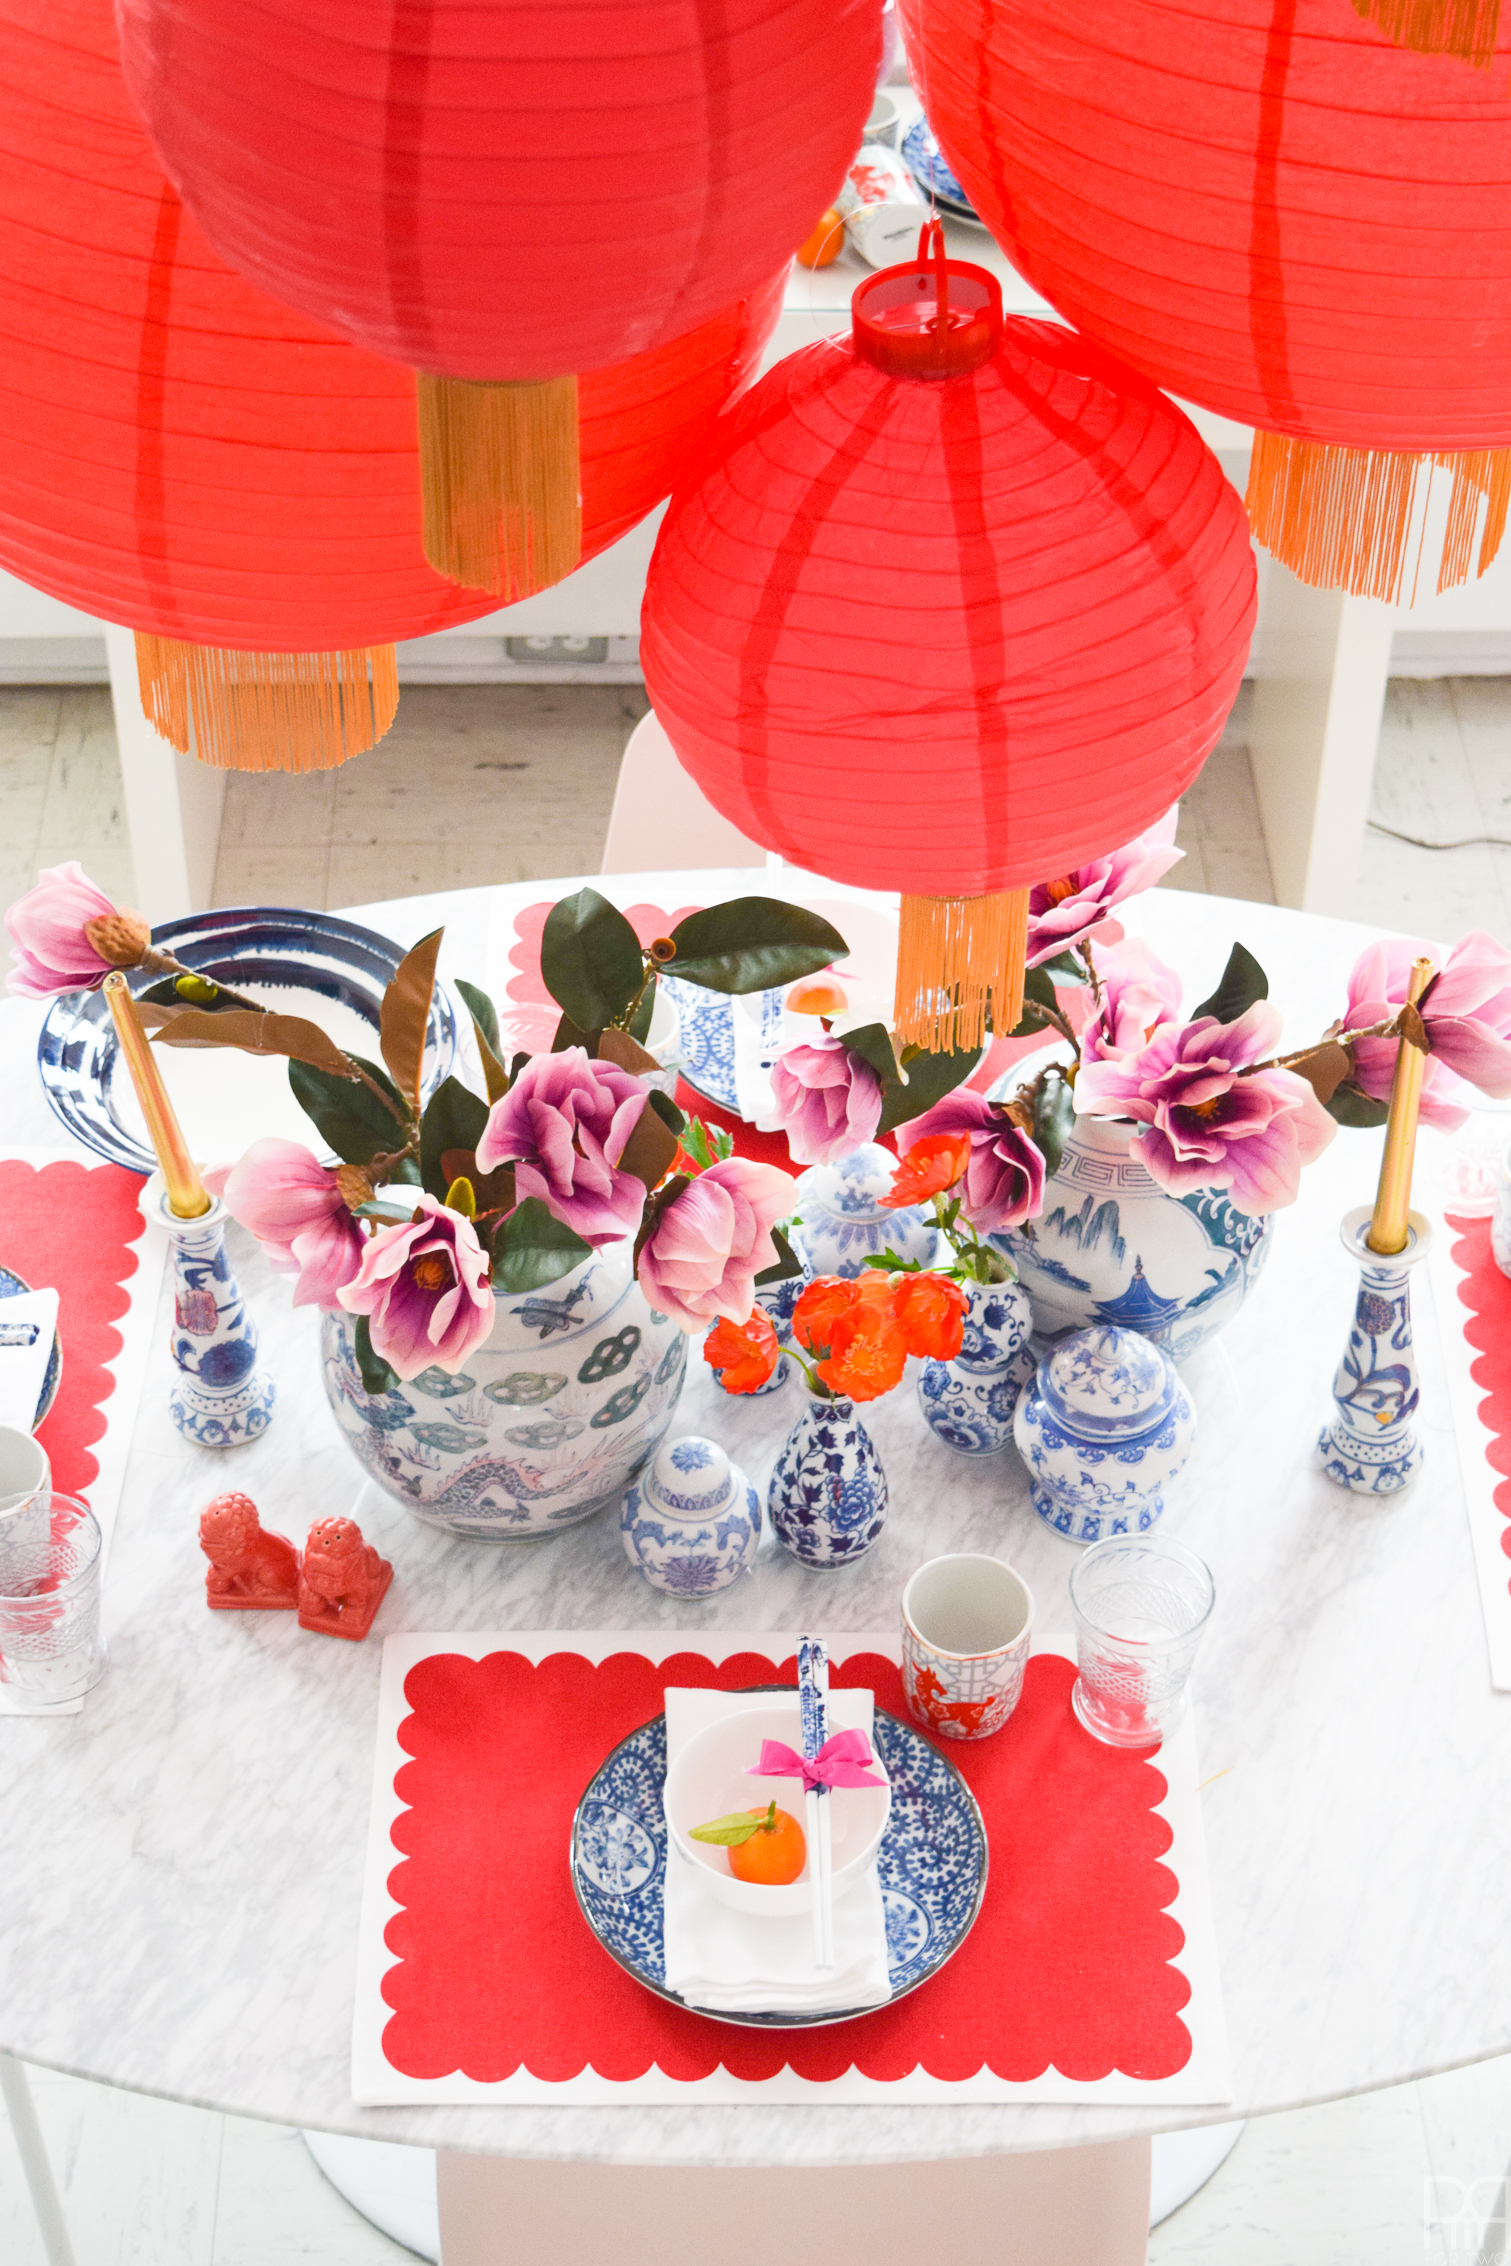 Kung Hey Fat Choi! Set a Glam Lunar New Year Tablescape using finds from your local World Market, and lots of big red paper lanterns.